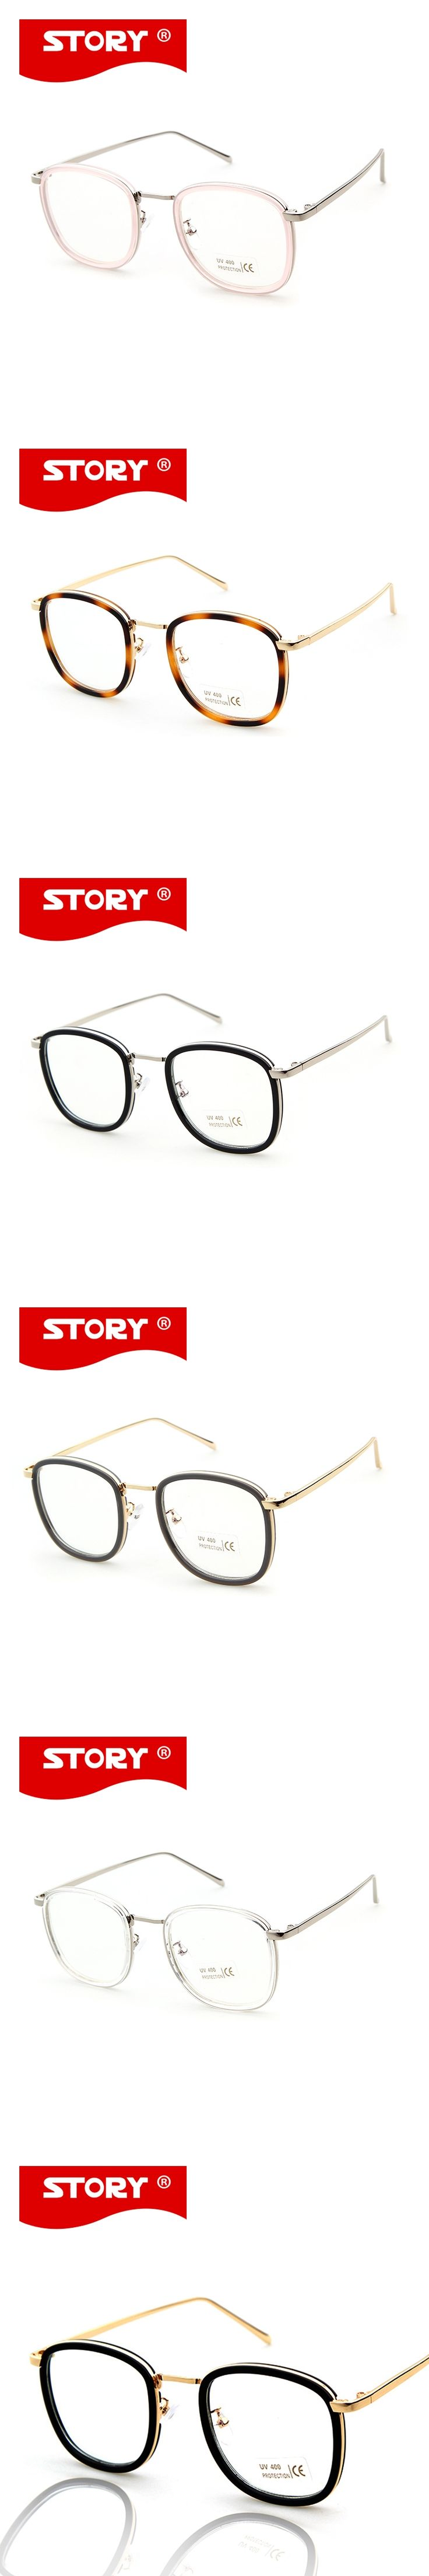 STORY Optical Frame Vintage Retro Glasses Frame Women Mirror Lens Original Designer  Sunglasses Feminino lentes opticos mujer